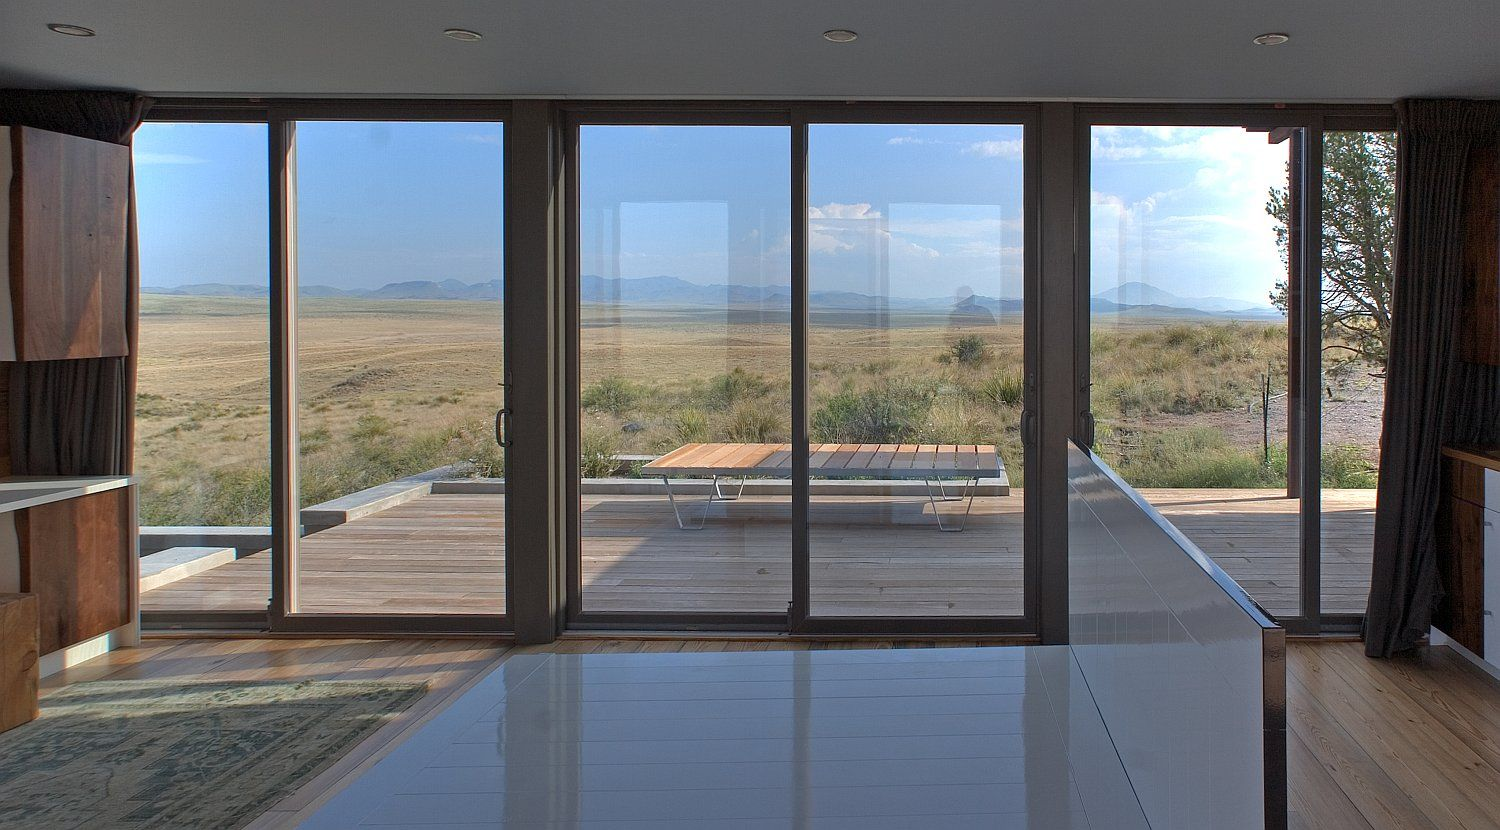 The Marfa Weehouse A Compact But Luxurious Desert Retreat The